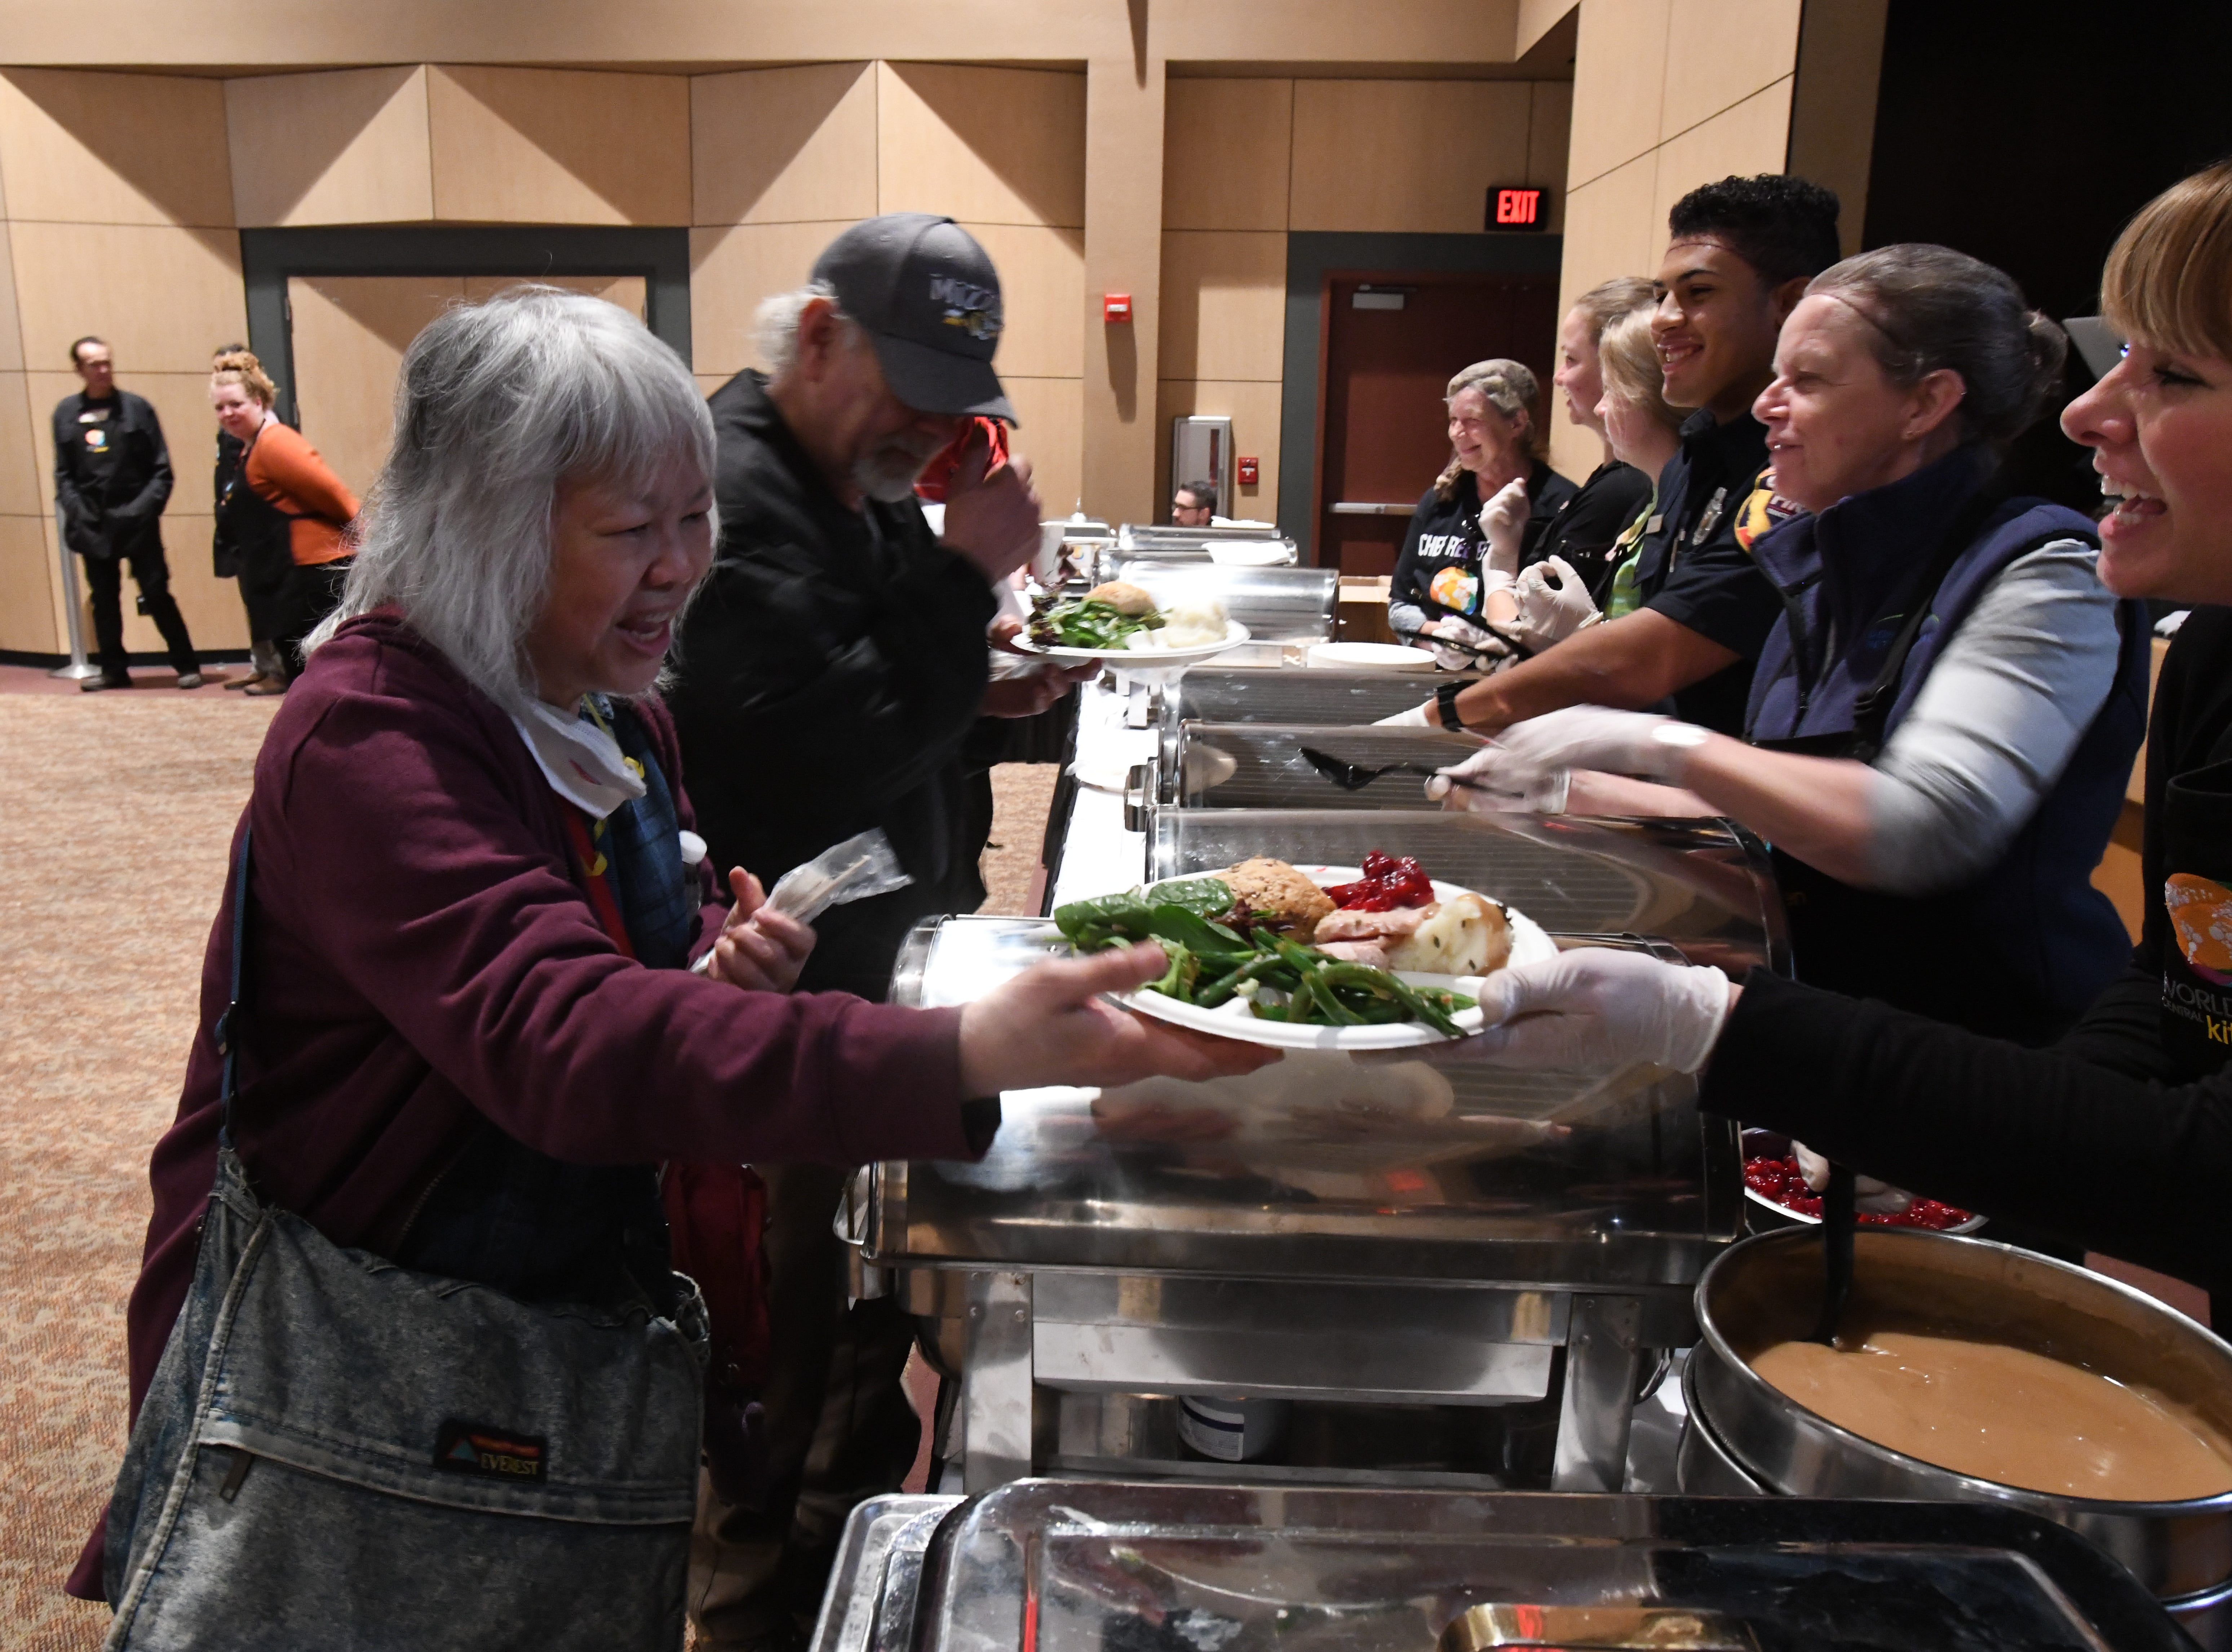 Colleen Love of Paradise, Calif., gets a Thanksgiving meal along with other evacuees from the Camp Fire on Nov. 22, 2018 in Chico, Calif. Love is among thousands of people who lost homes in the fire.